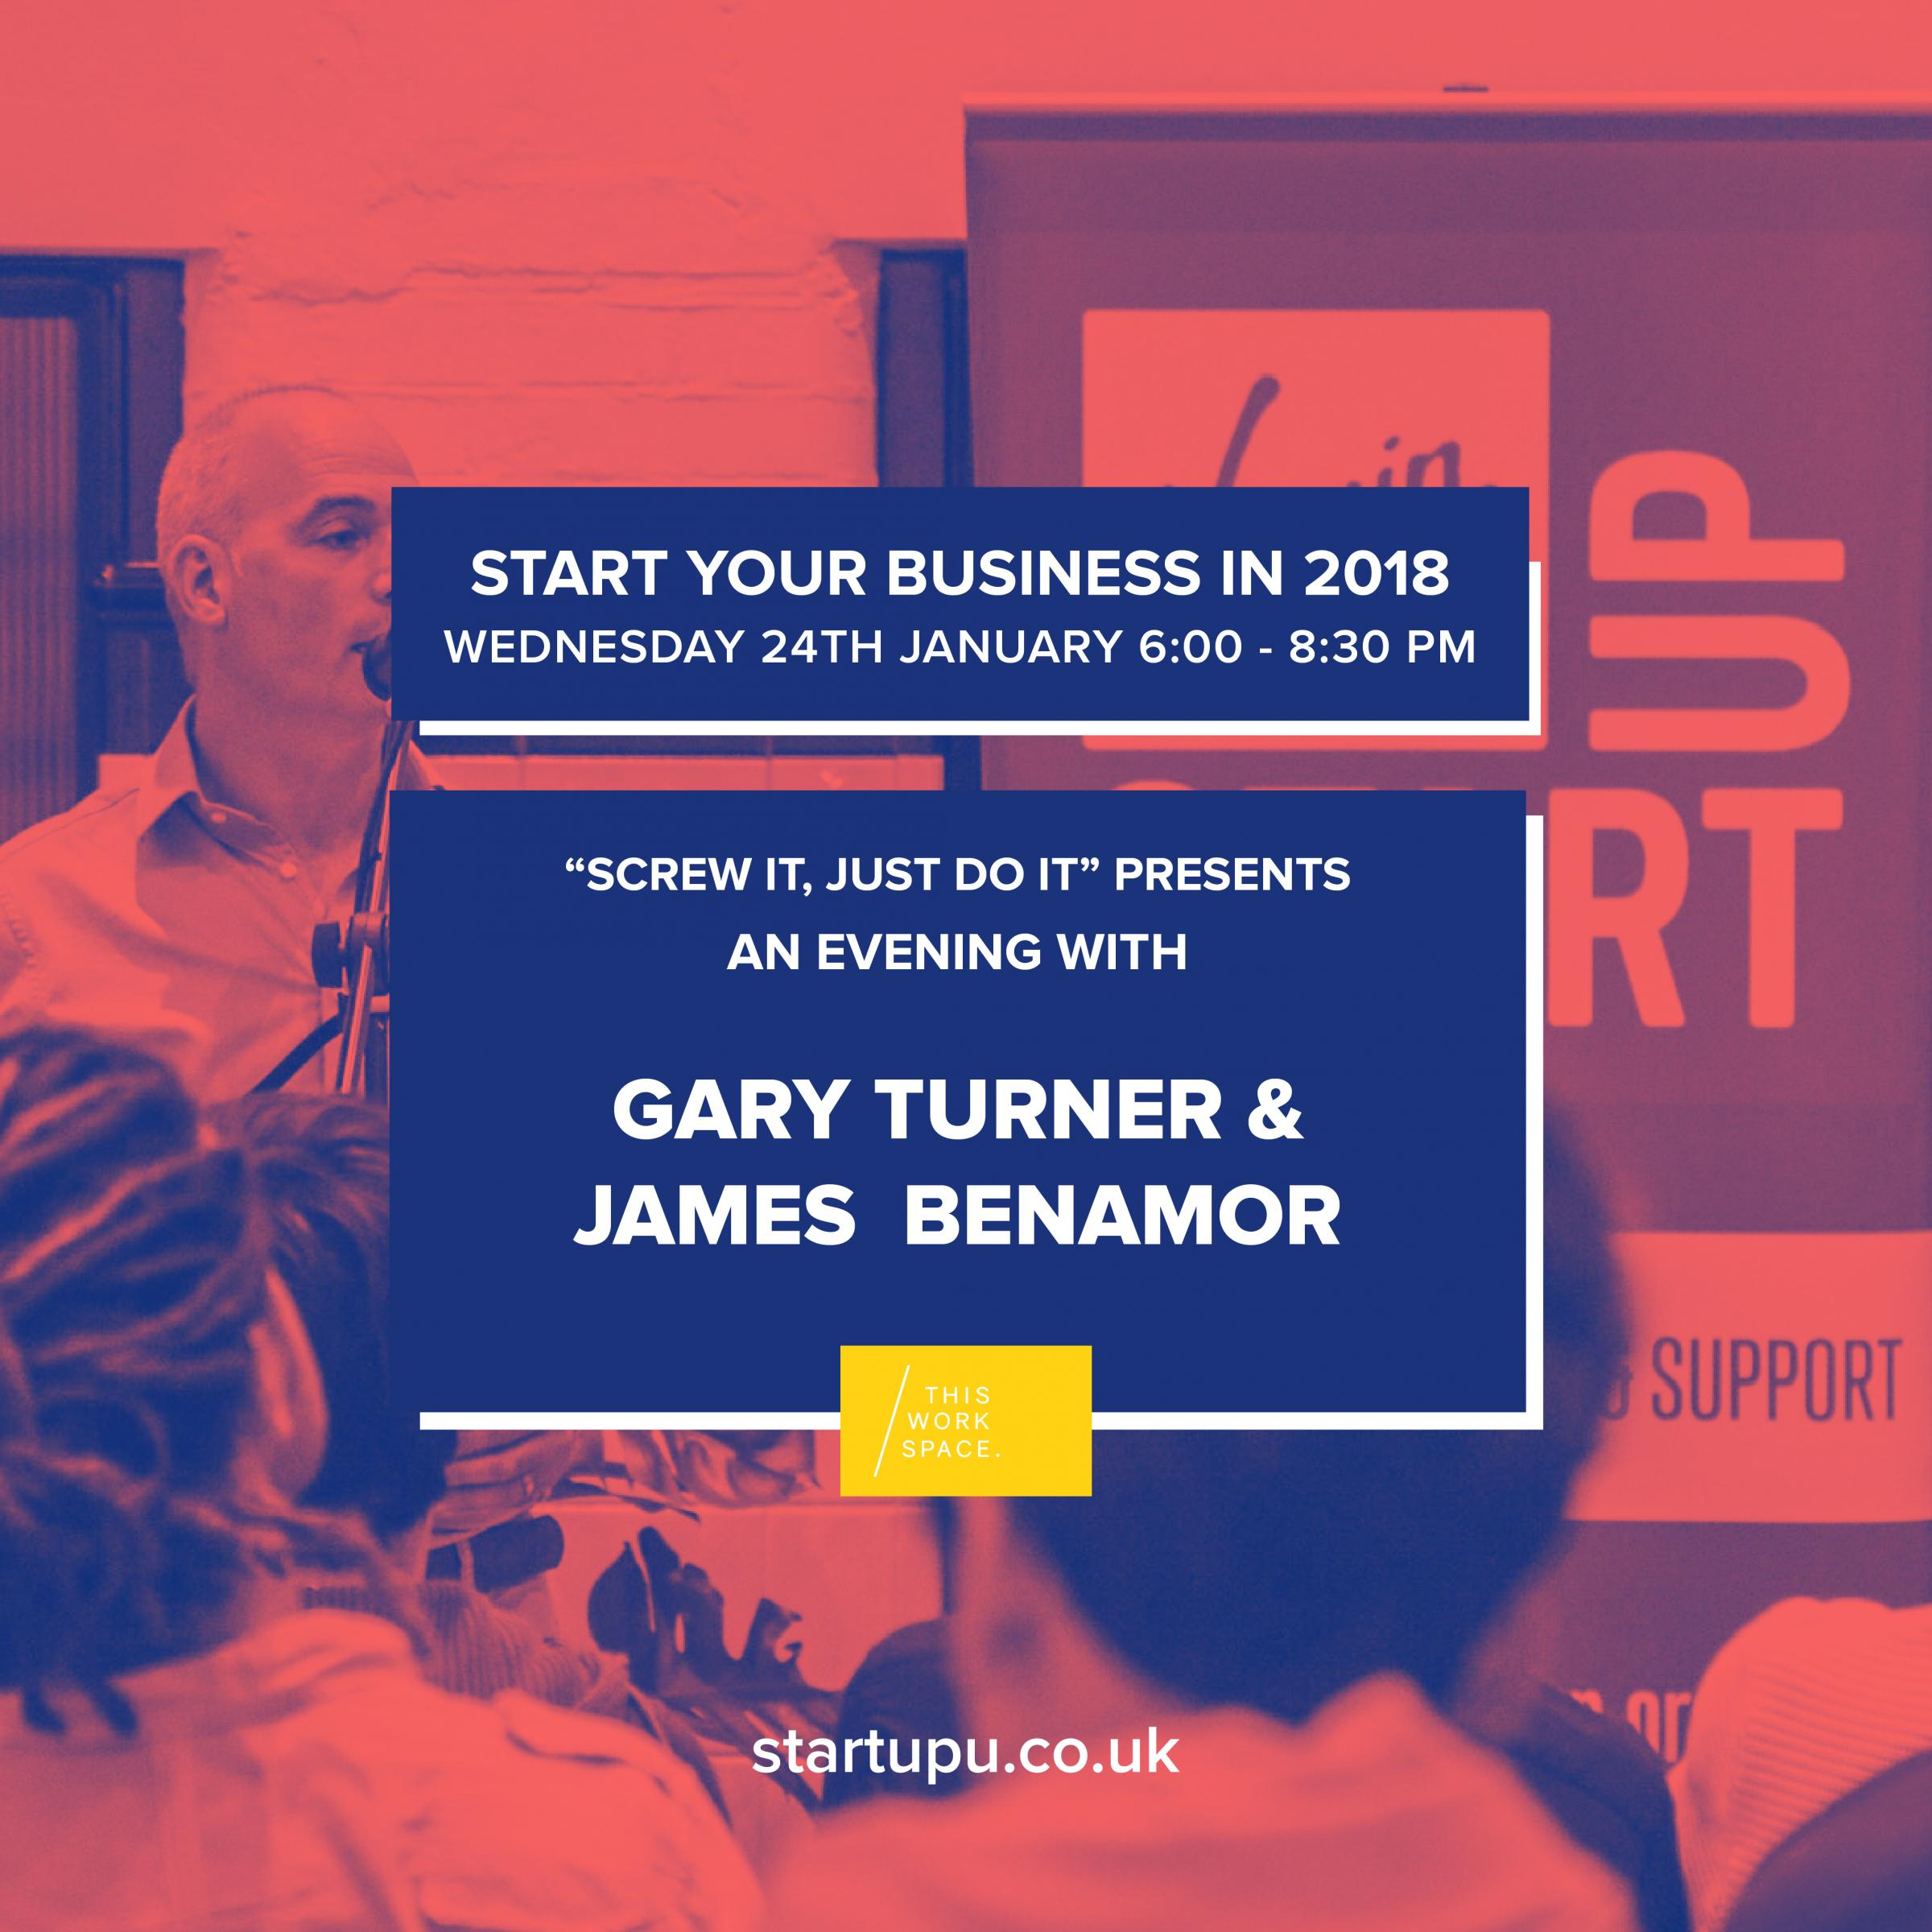 Screw it, Just do it Presents: Start a Business in 2018